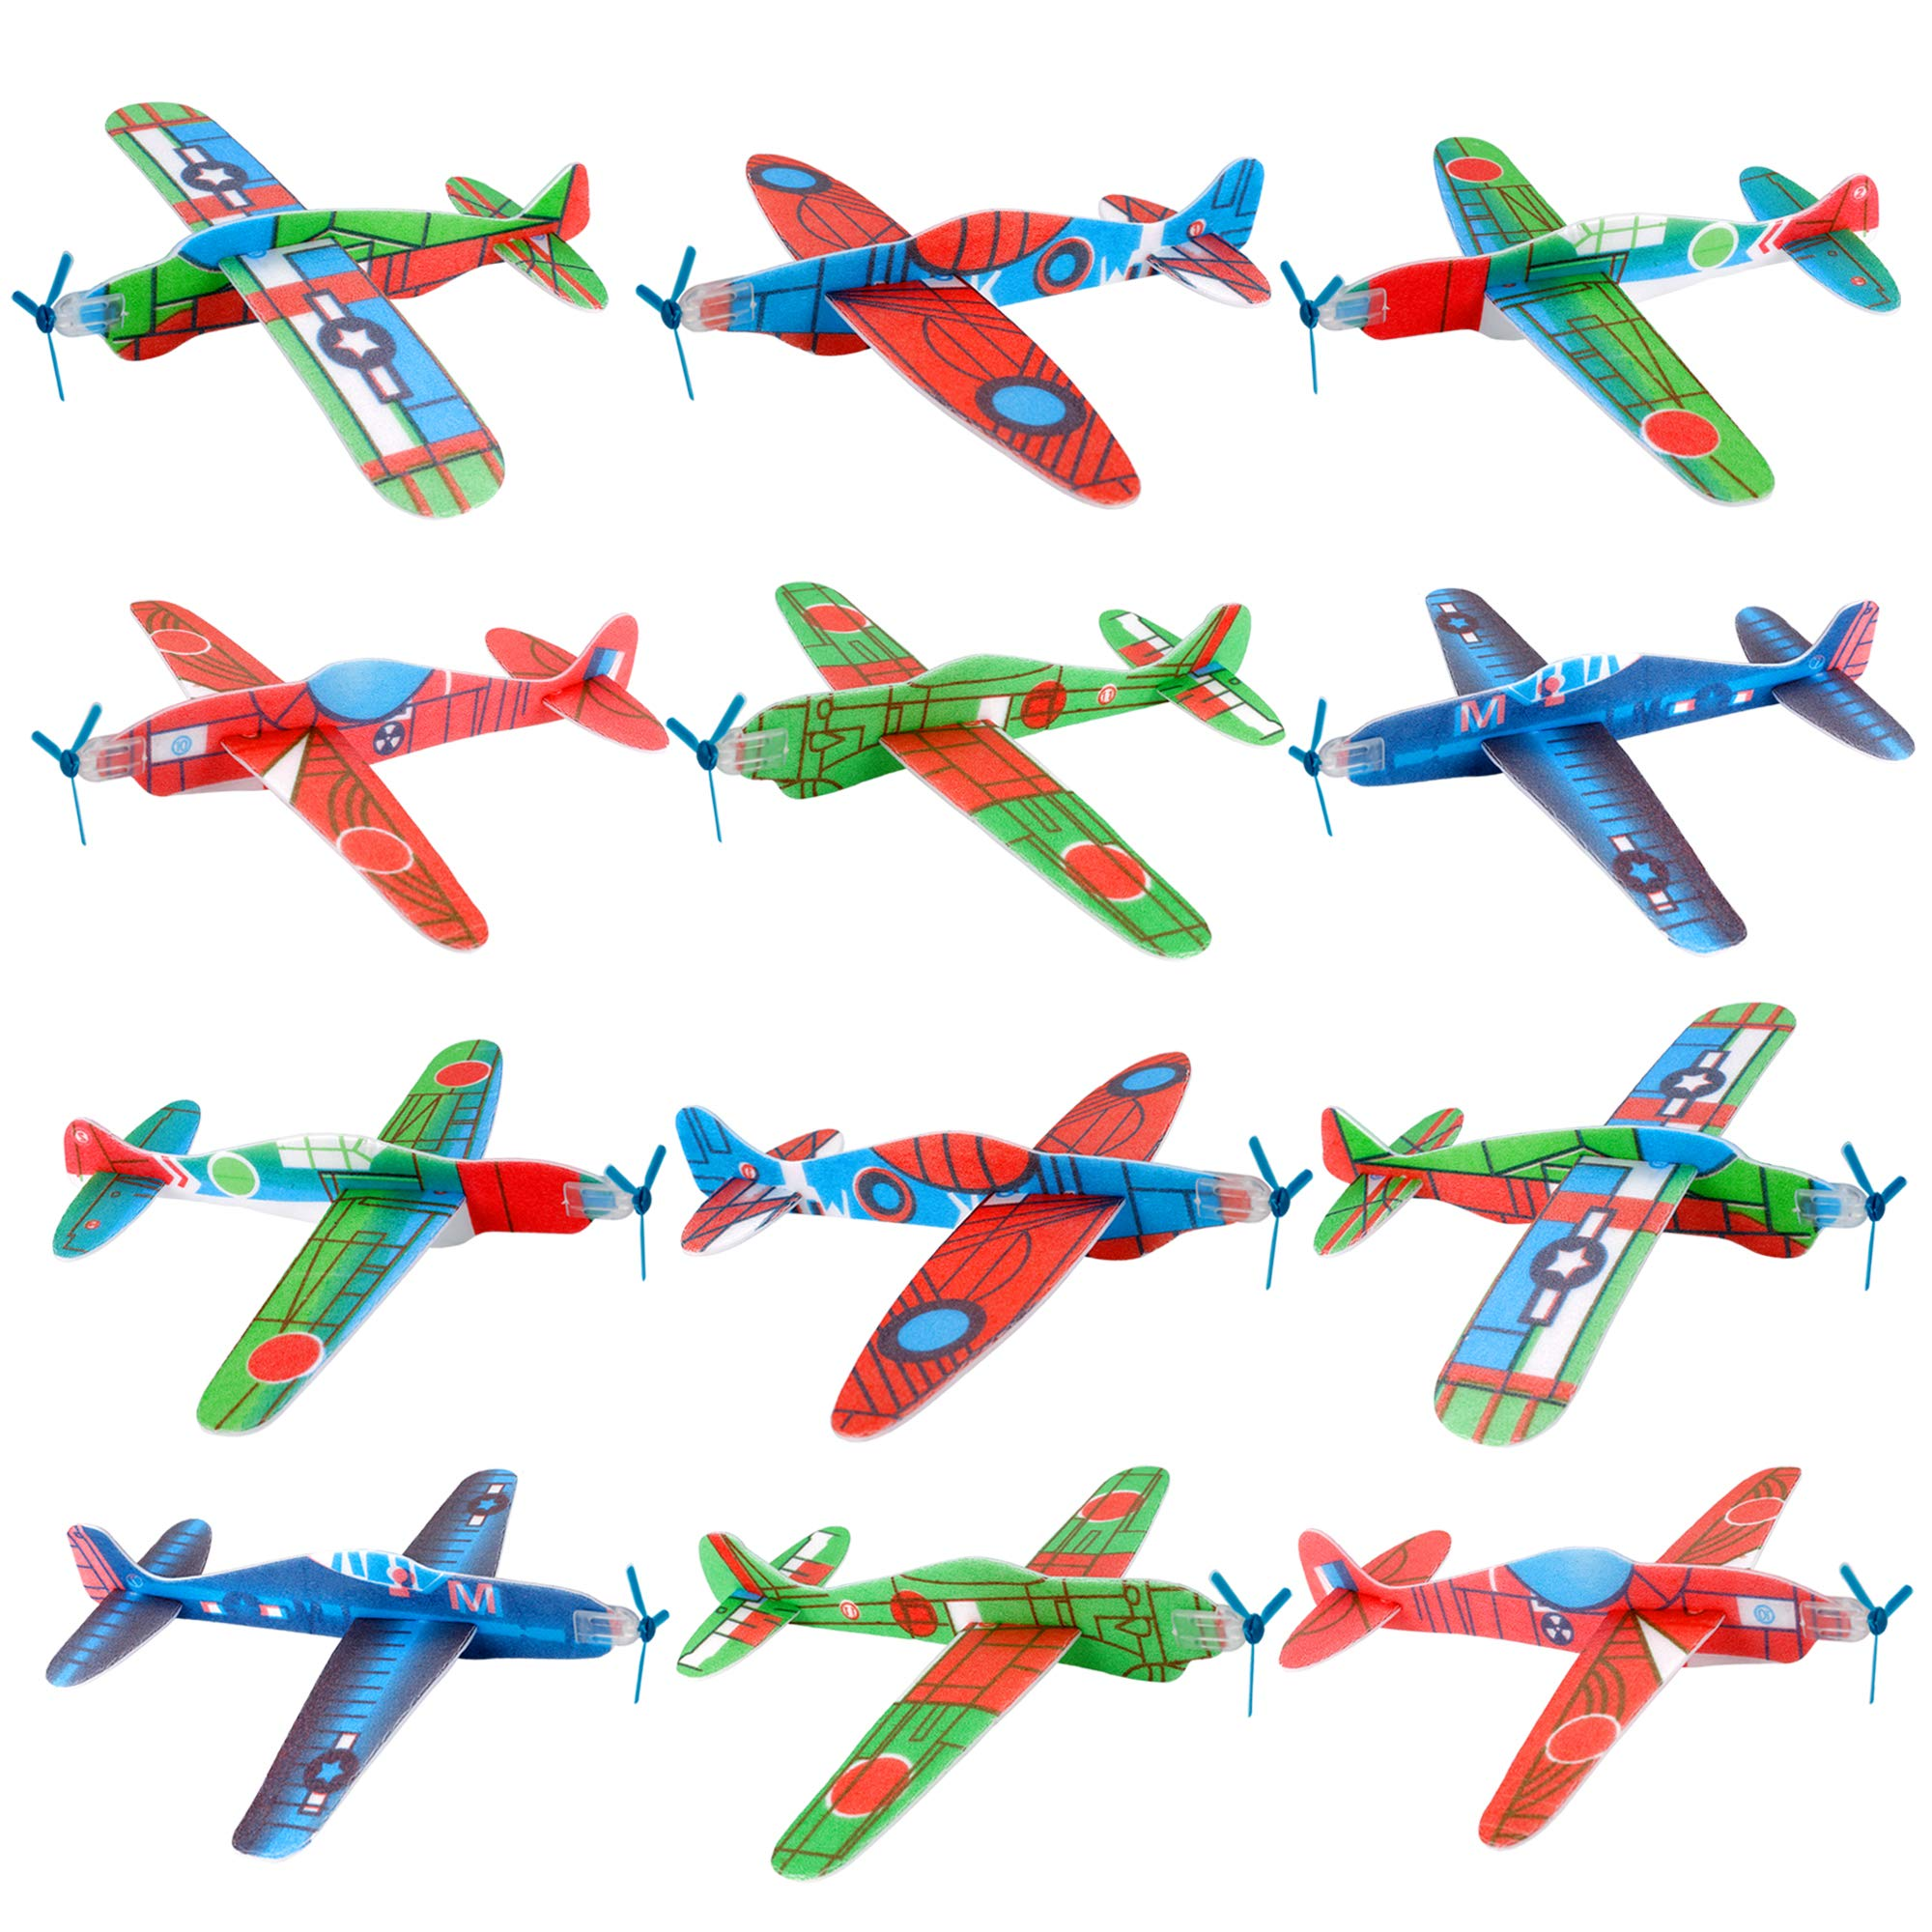 UPINS 48 Pcs 8'' Flying Glider Plane,6 Different Designs by UPINS (Image #7)